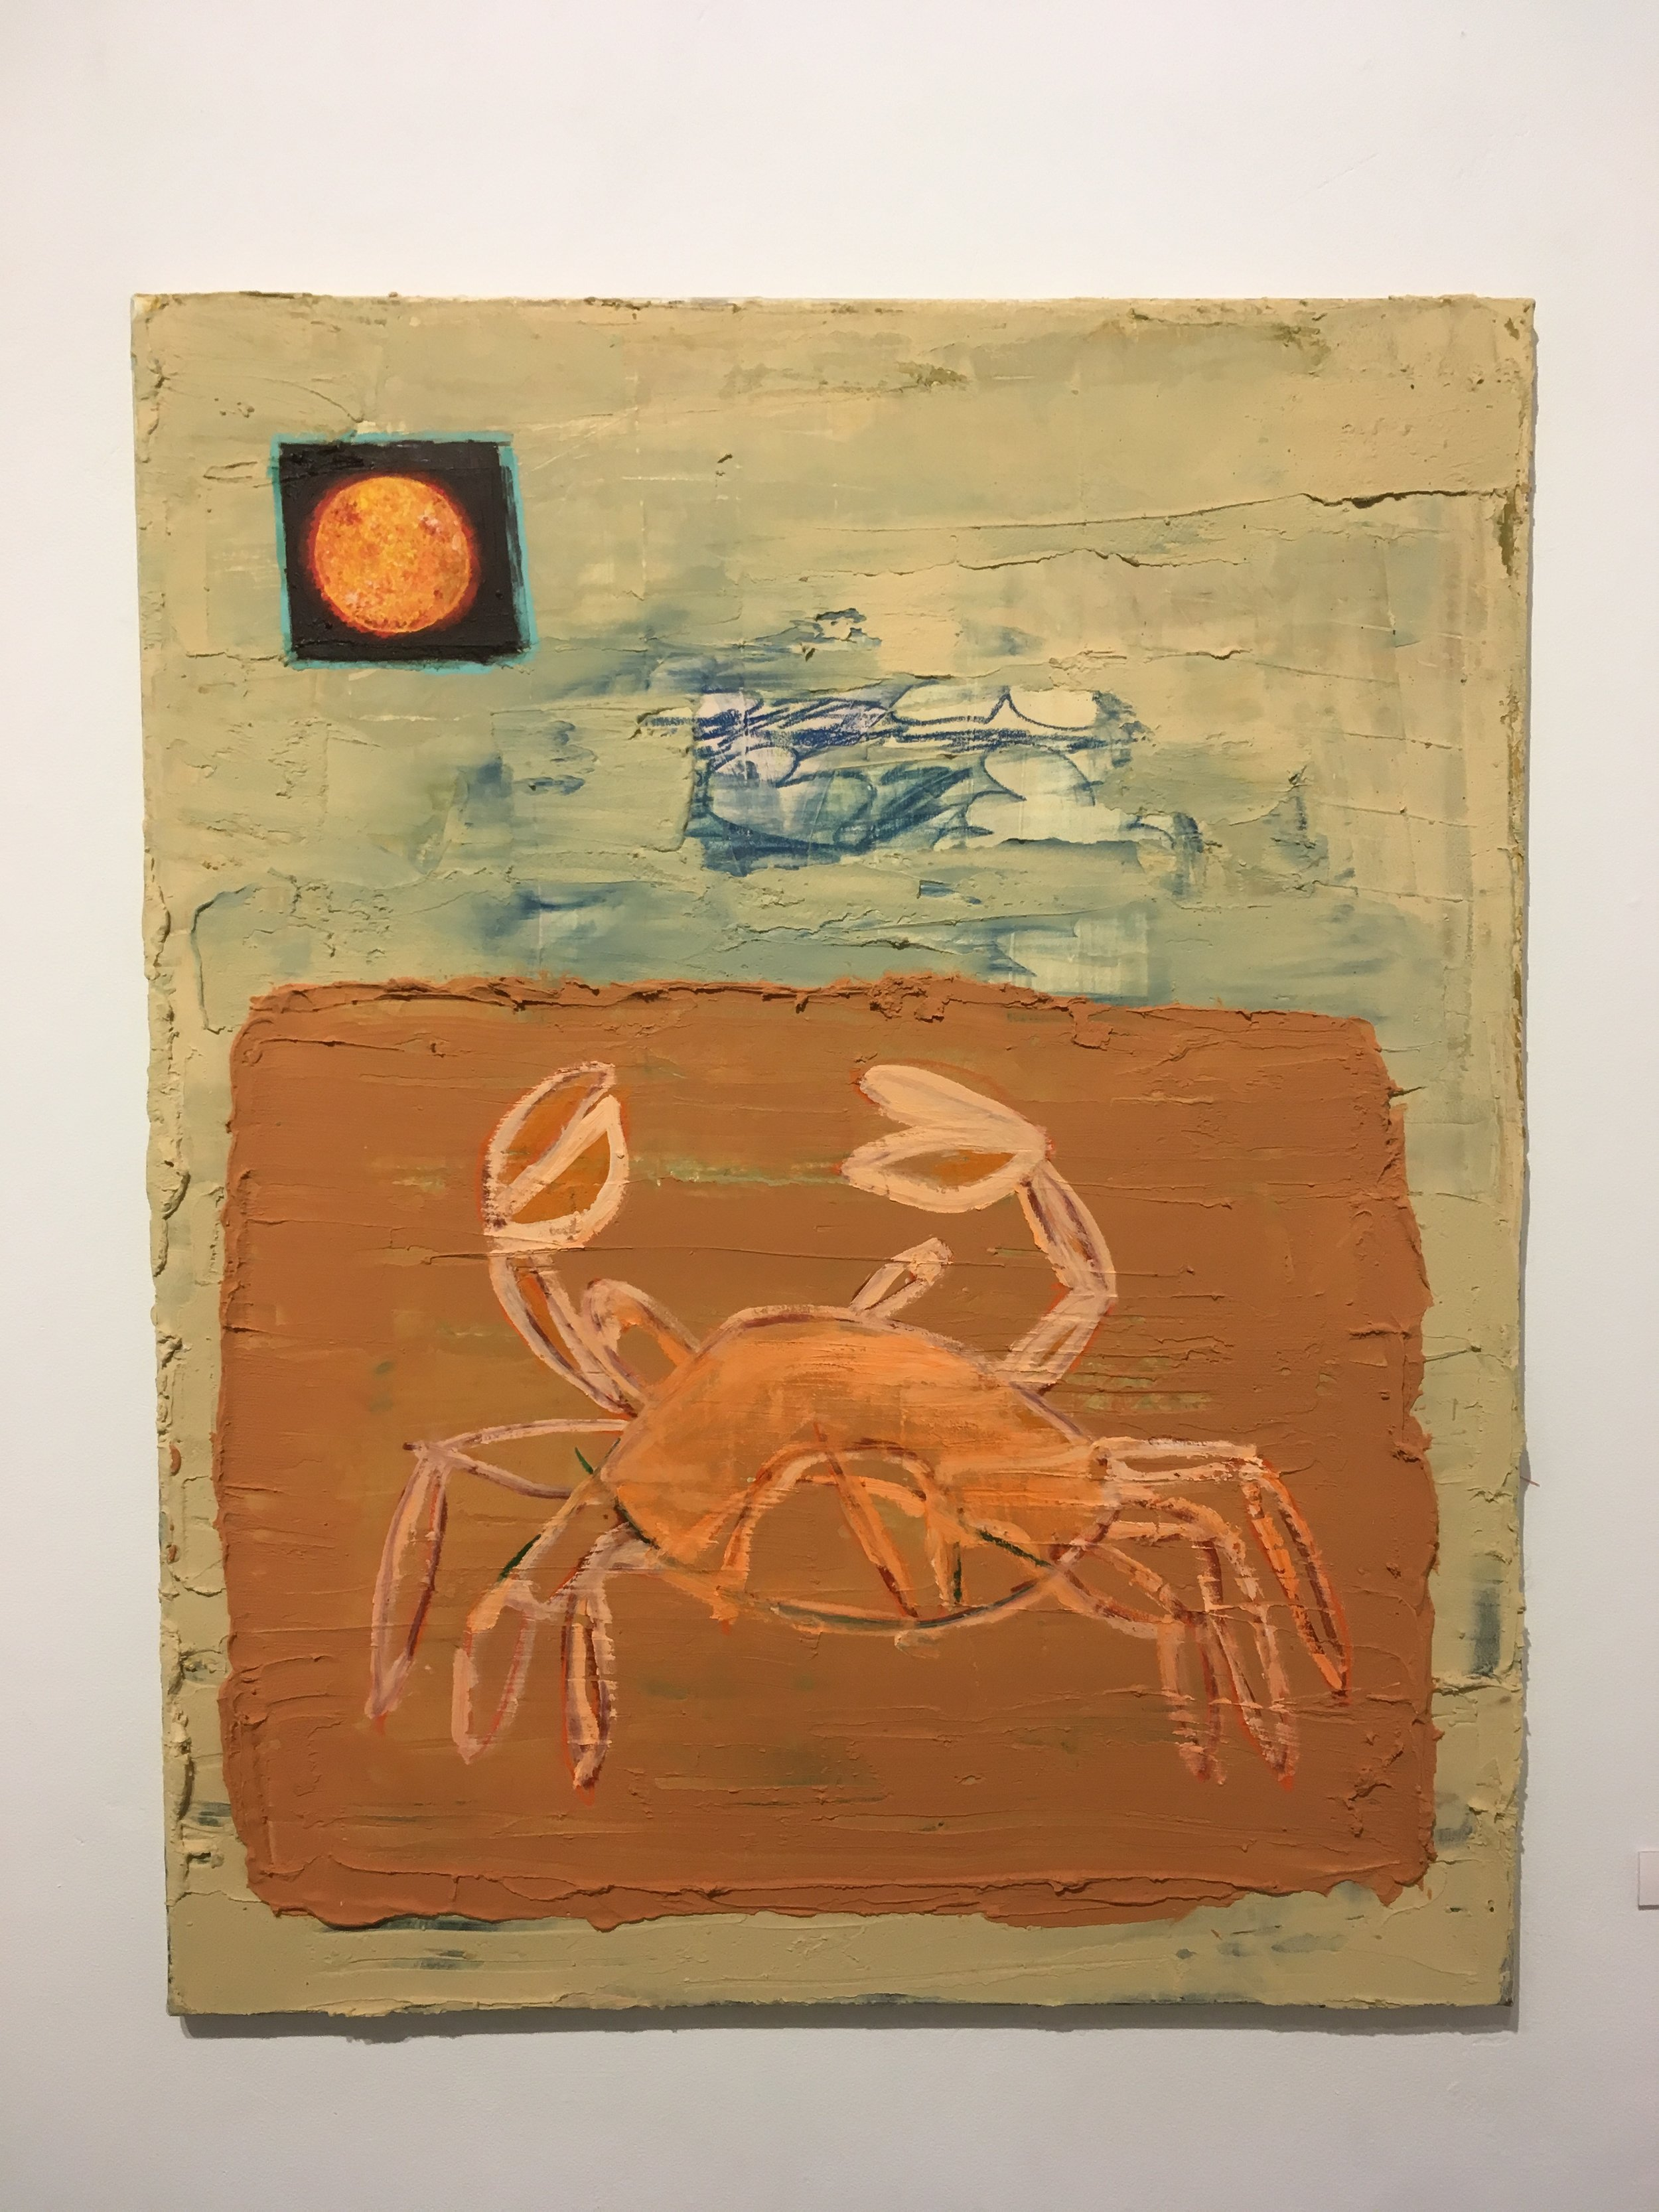 Crab on Sunny Day